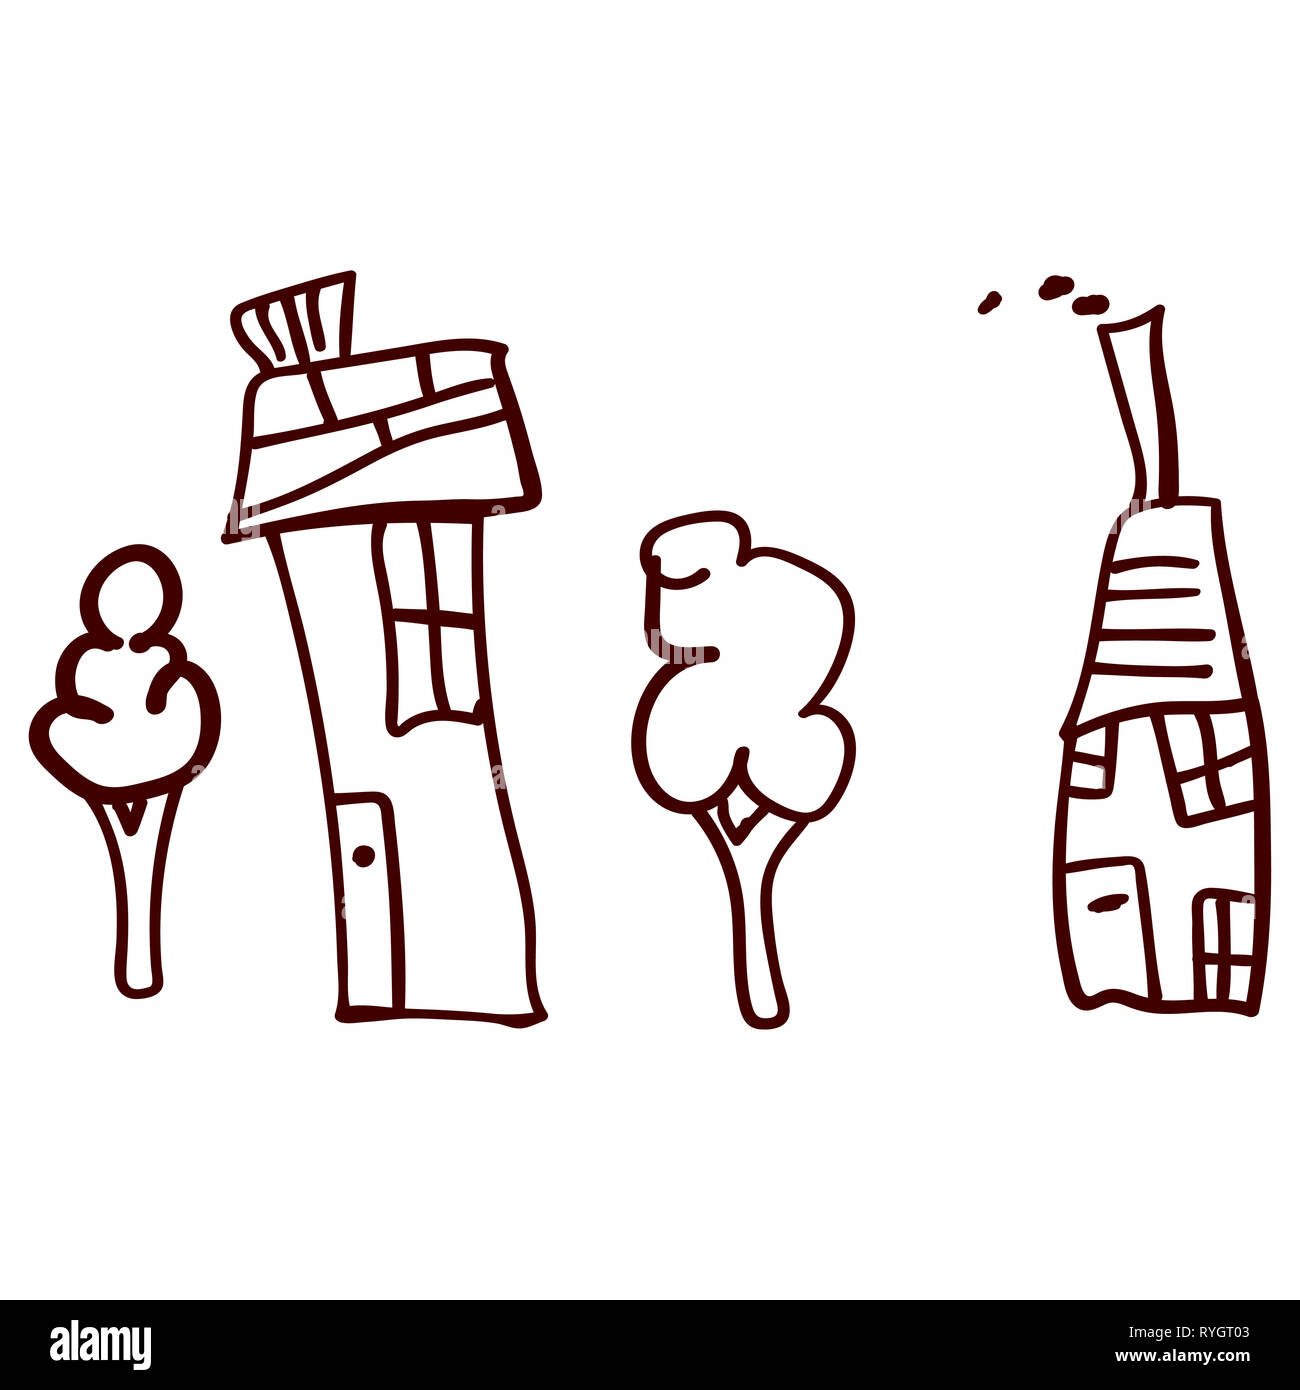 Children drawn houses and plants in doodle style. Contoured and isolated.  illustration - Stock Image